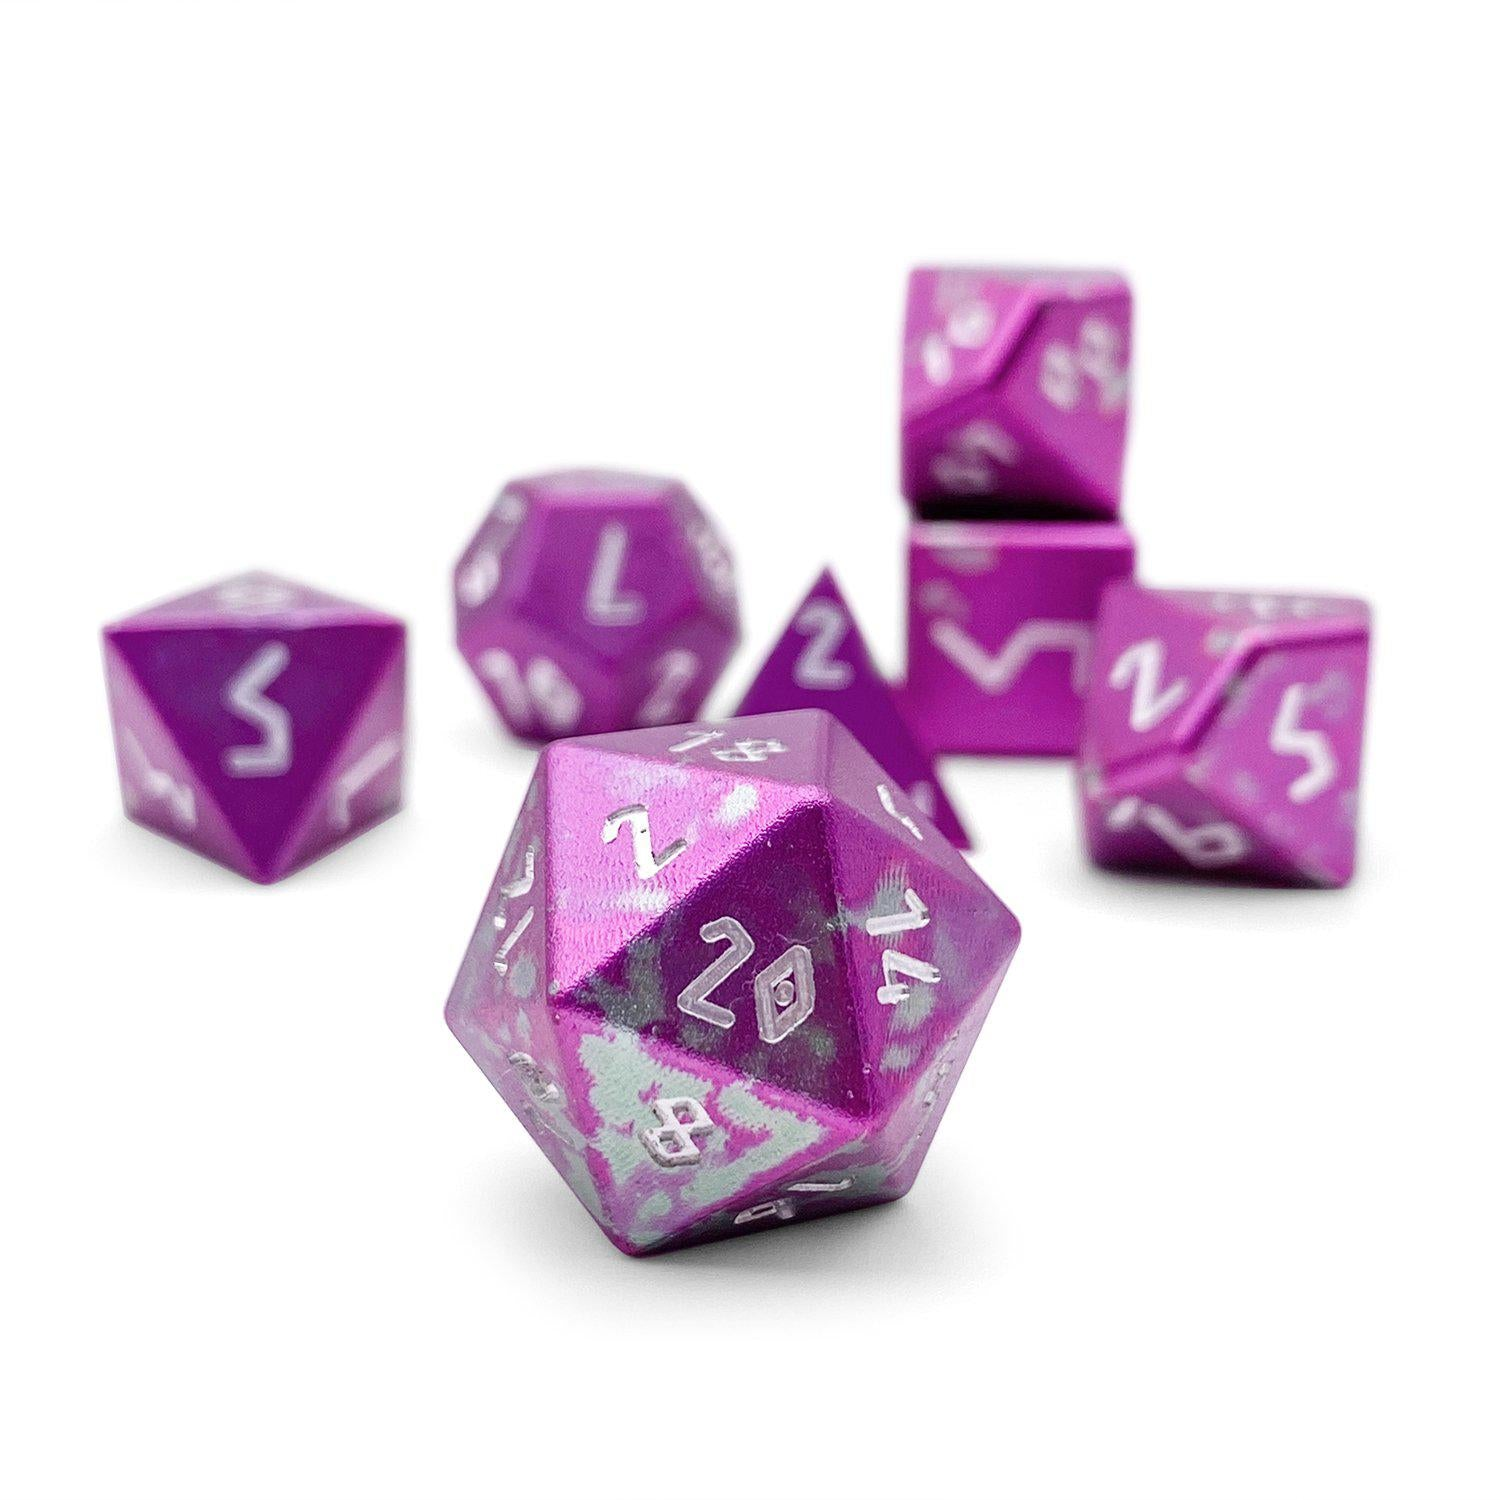 Pixie Dust - Wondrous Dice Set of 7 RPG Dice by Norse Foundry Precision Polyhedral Dice Set